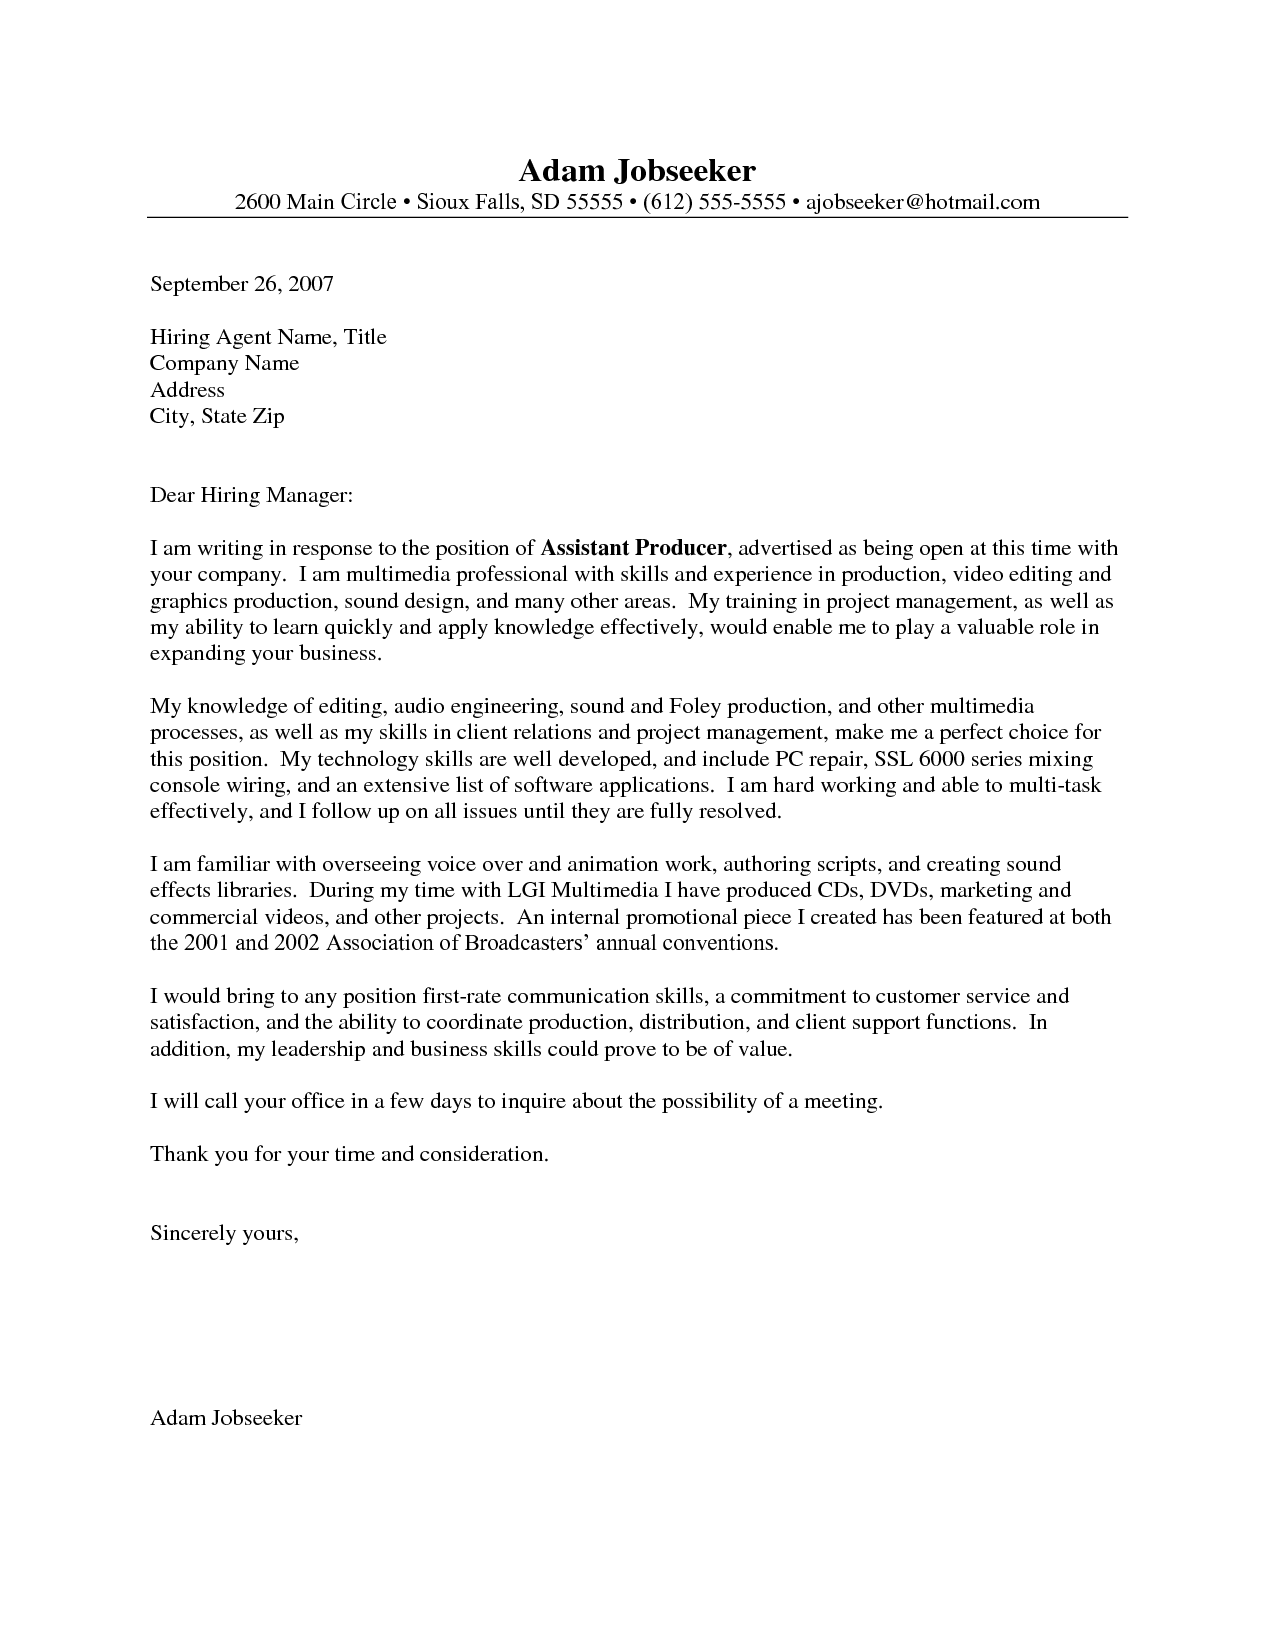 Cover Letter For Hospital Housekeeping Position With No